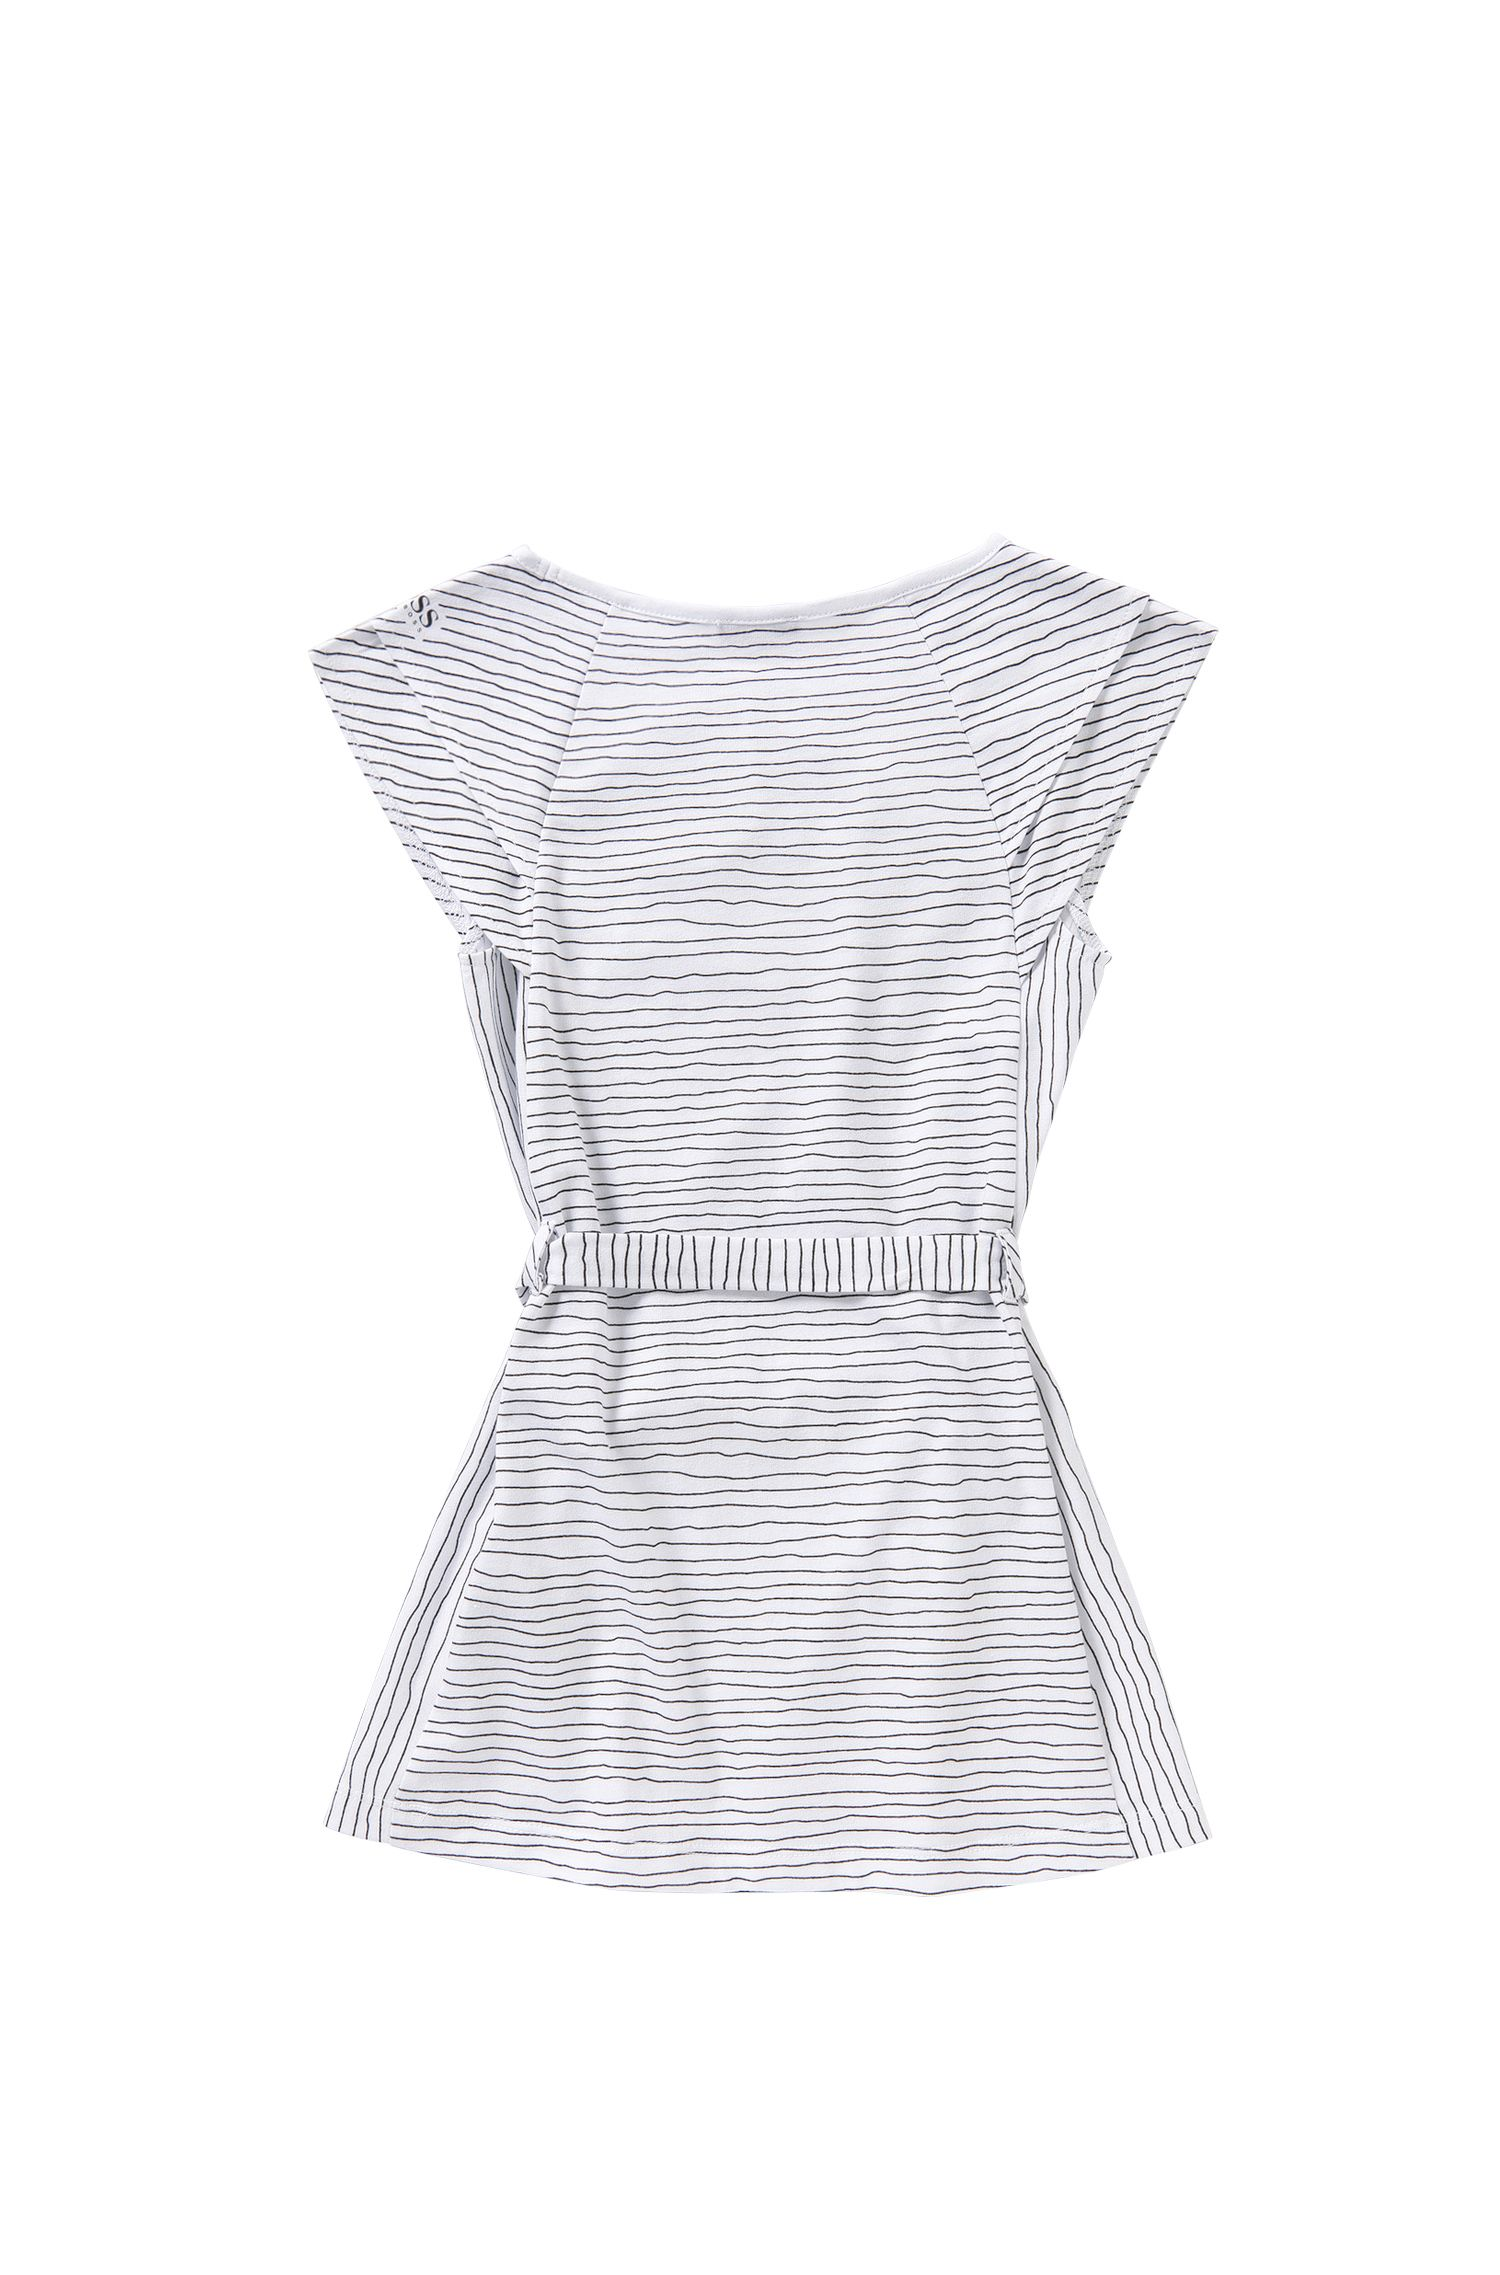 Striped kids' dress in cotton with belt: 'J12148'